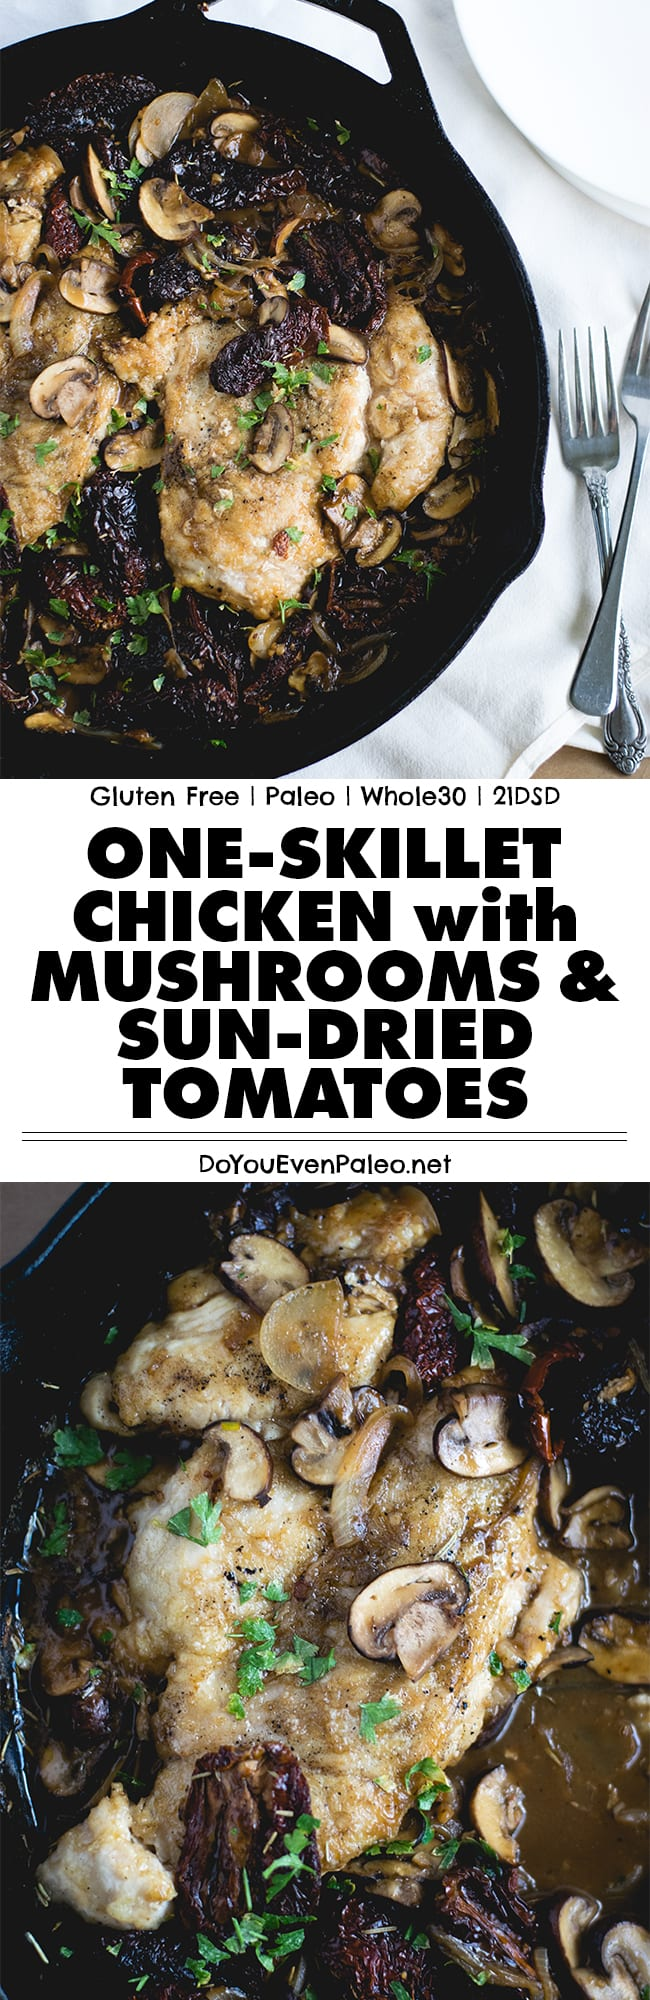 A quick one-skillet chicken recipe that's filled with earthy mushrooms and salty sun-dried tomatoes! Paleo, gluten free, and whole30 | DoYouEvenPaleo.net